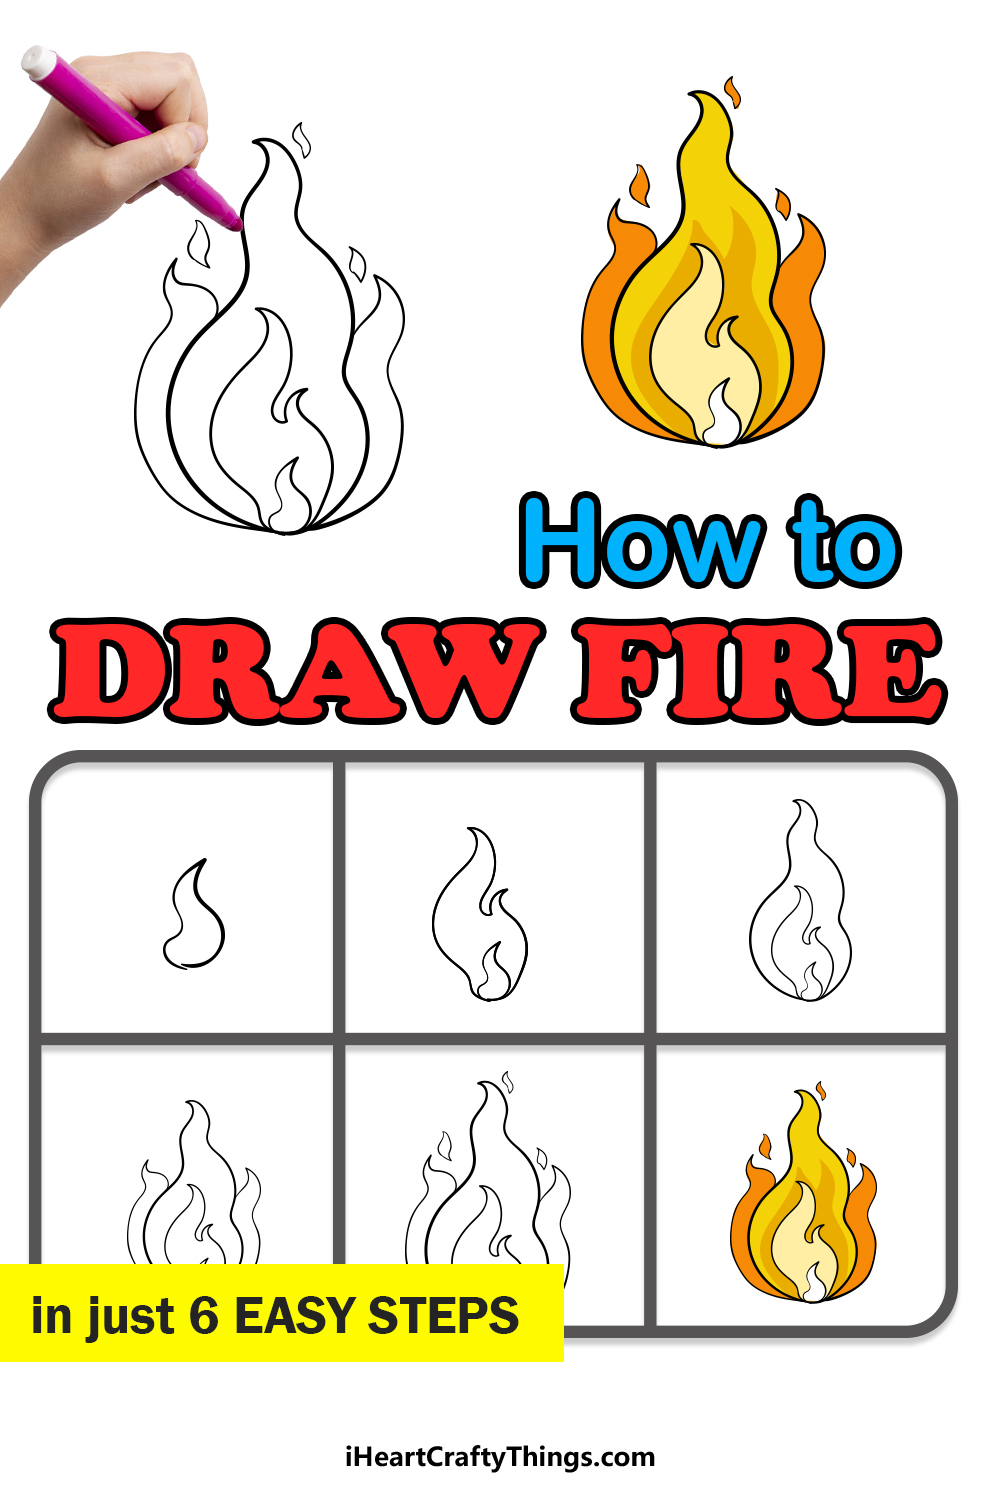 how to draw fire in 6 easy steps